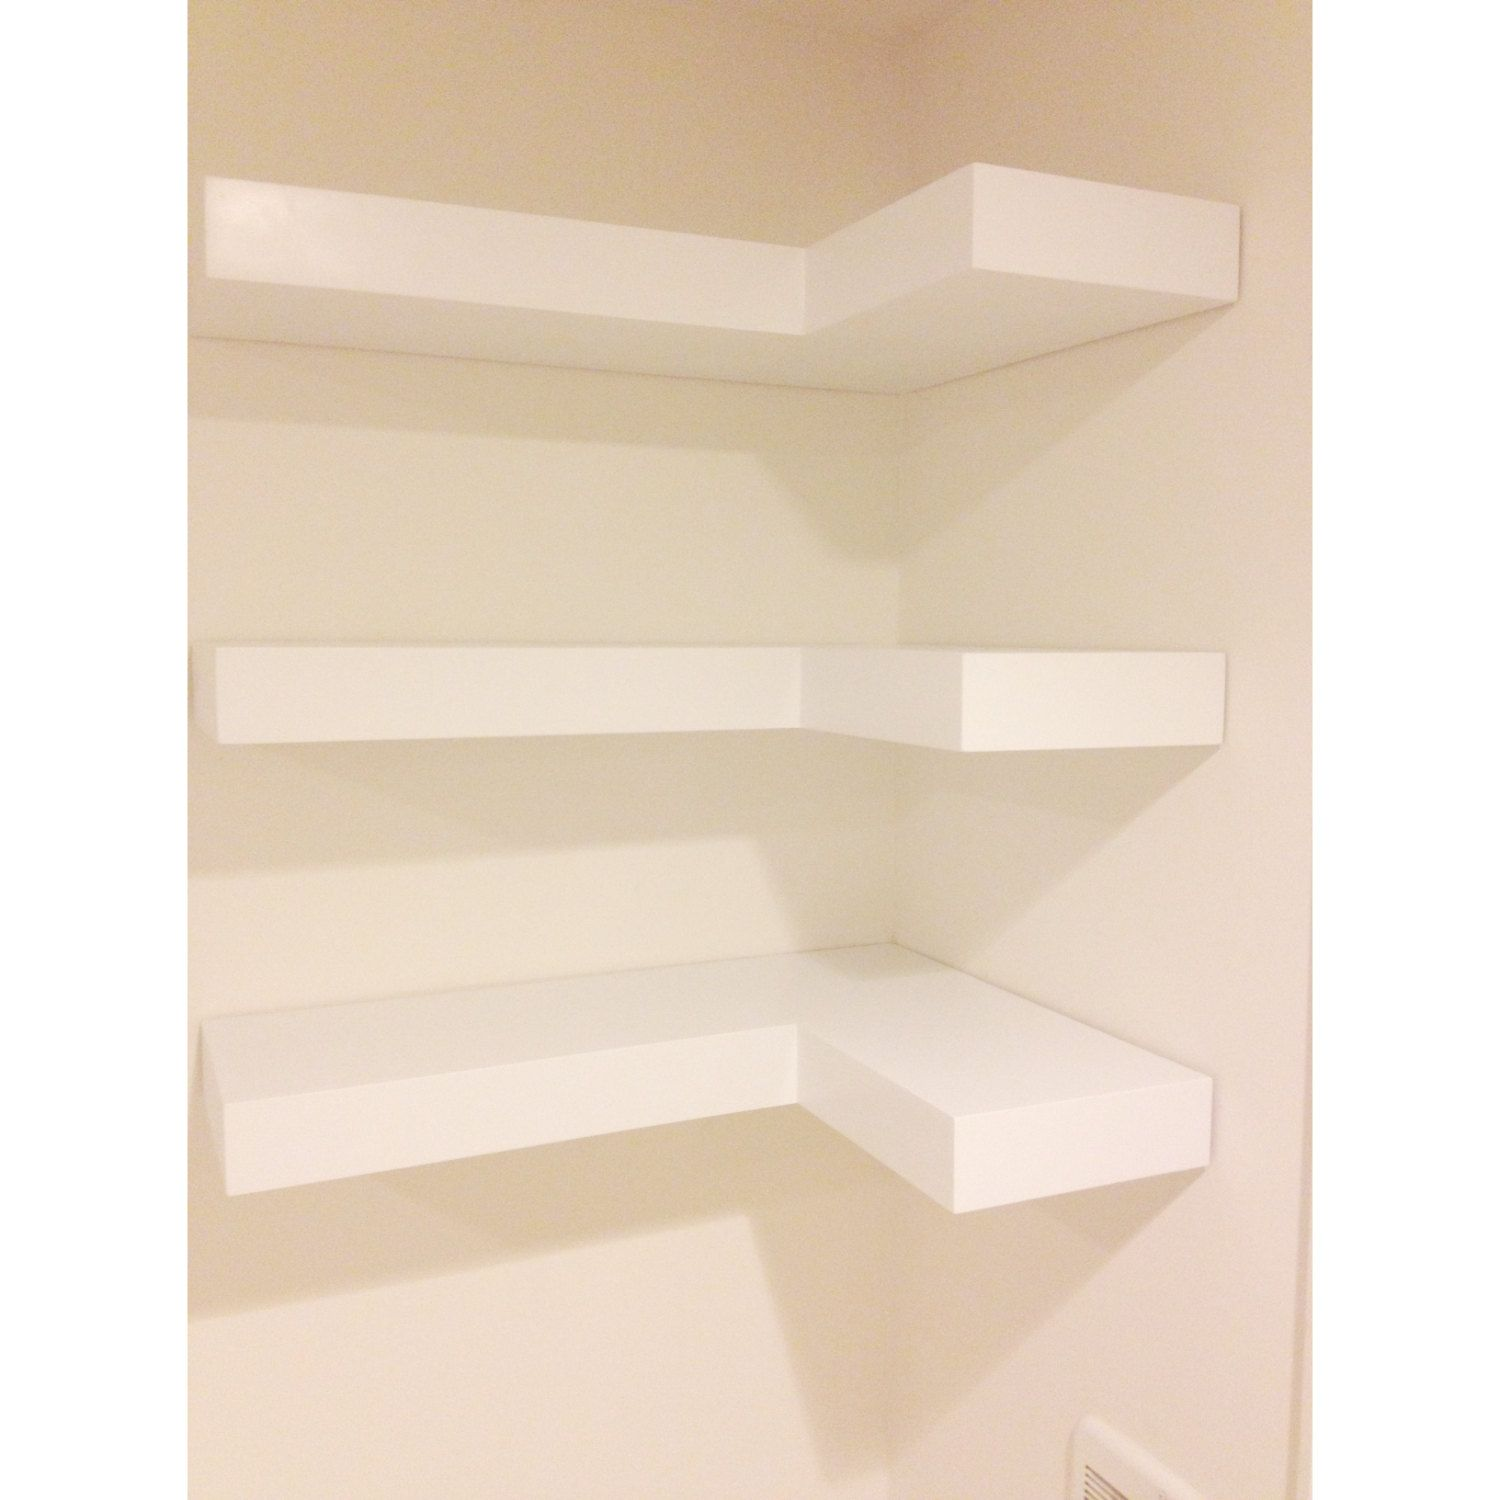 white floating corner shelves set three woodguycustoms small shelf microwave table outdoor boot rack mural good ready made over the toilet glass wall hanger vanity top with coat